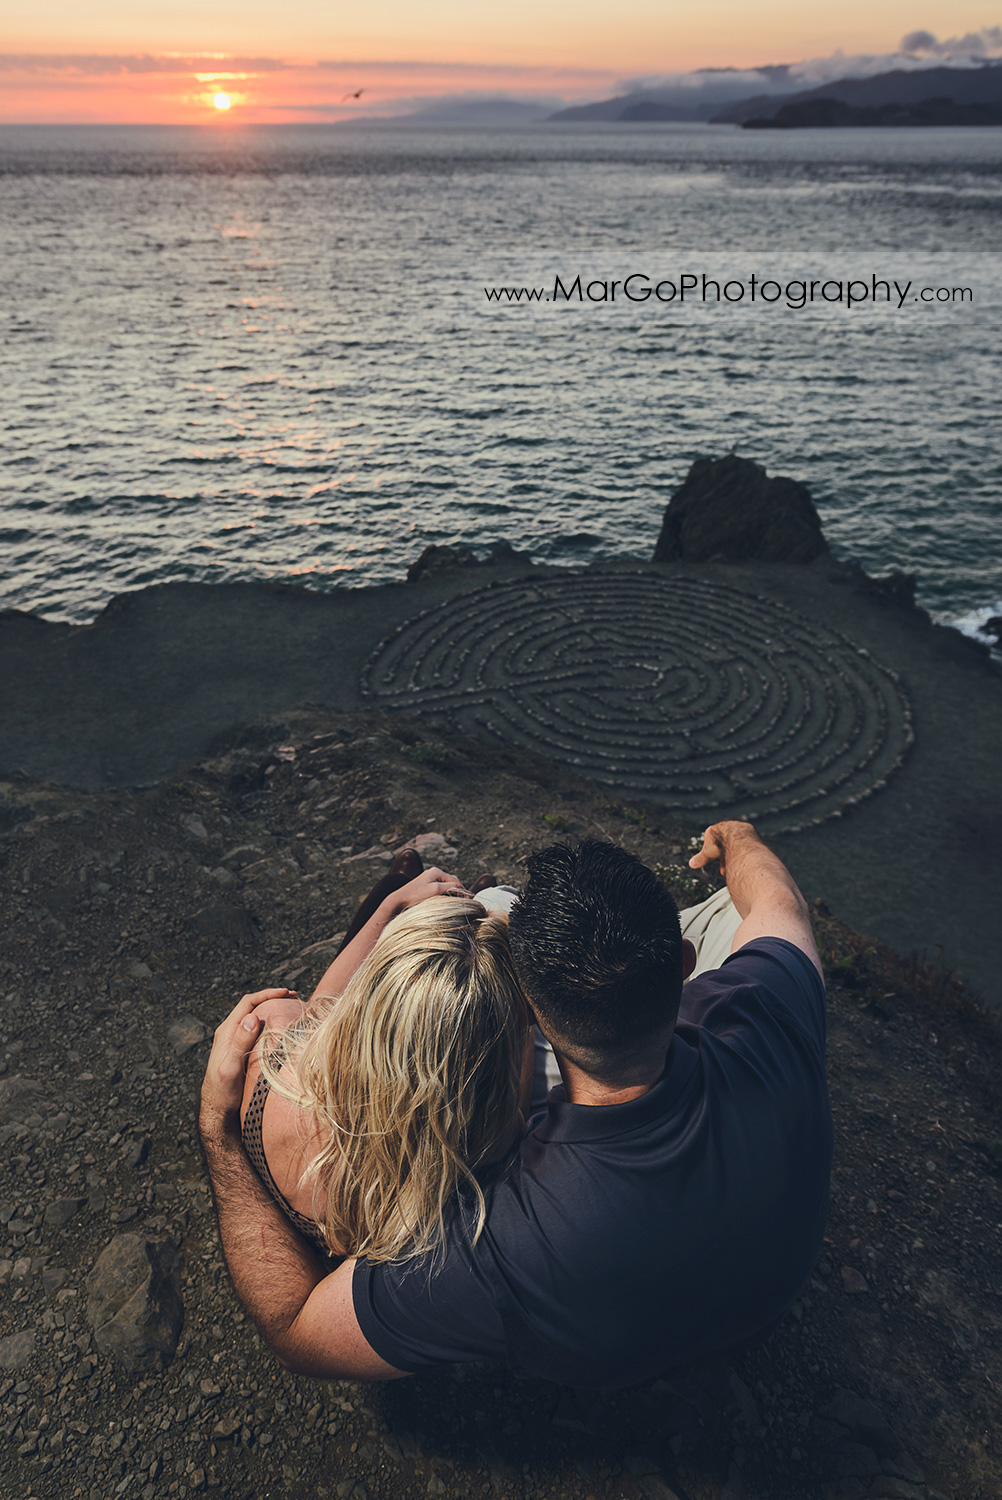 man in navy blue shirt and woman in brown tunic watching sunset above stone labyrinth during engagement session at San Francisco Lands End